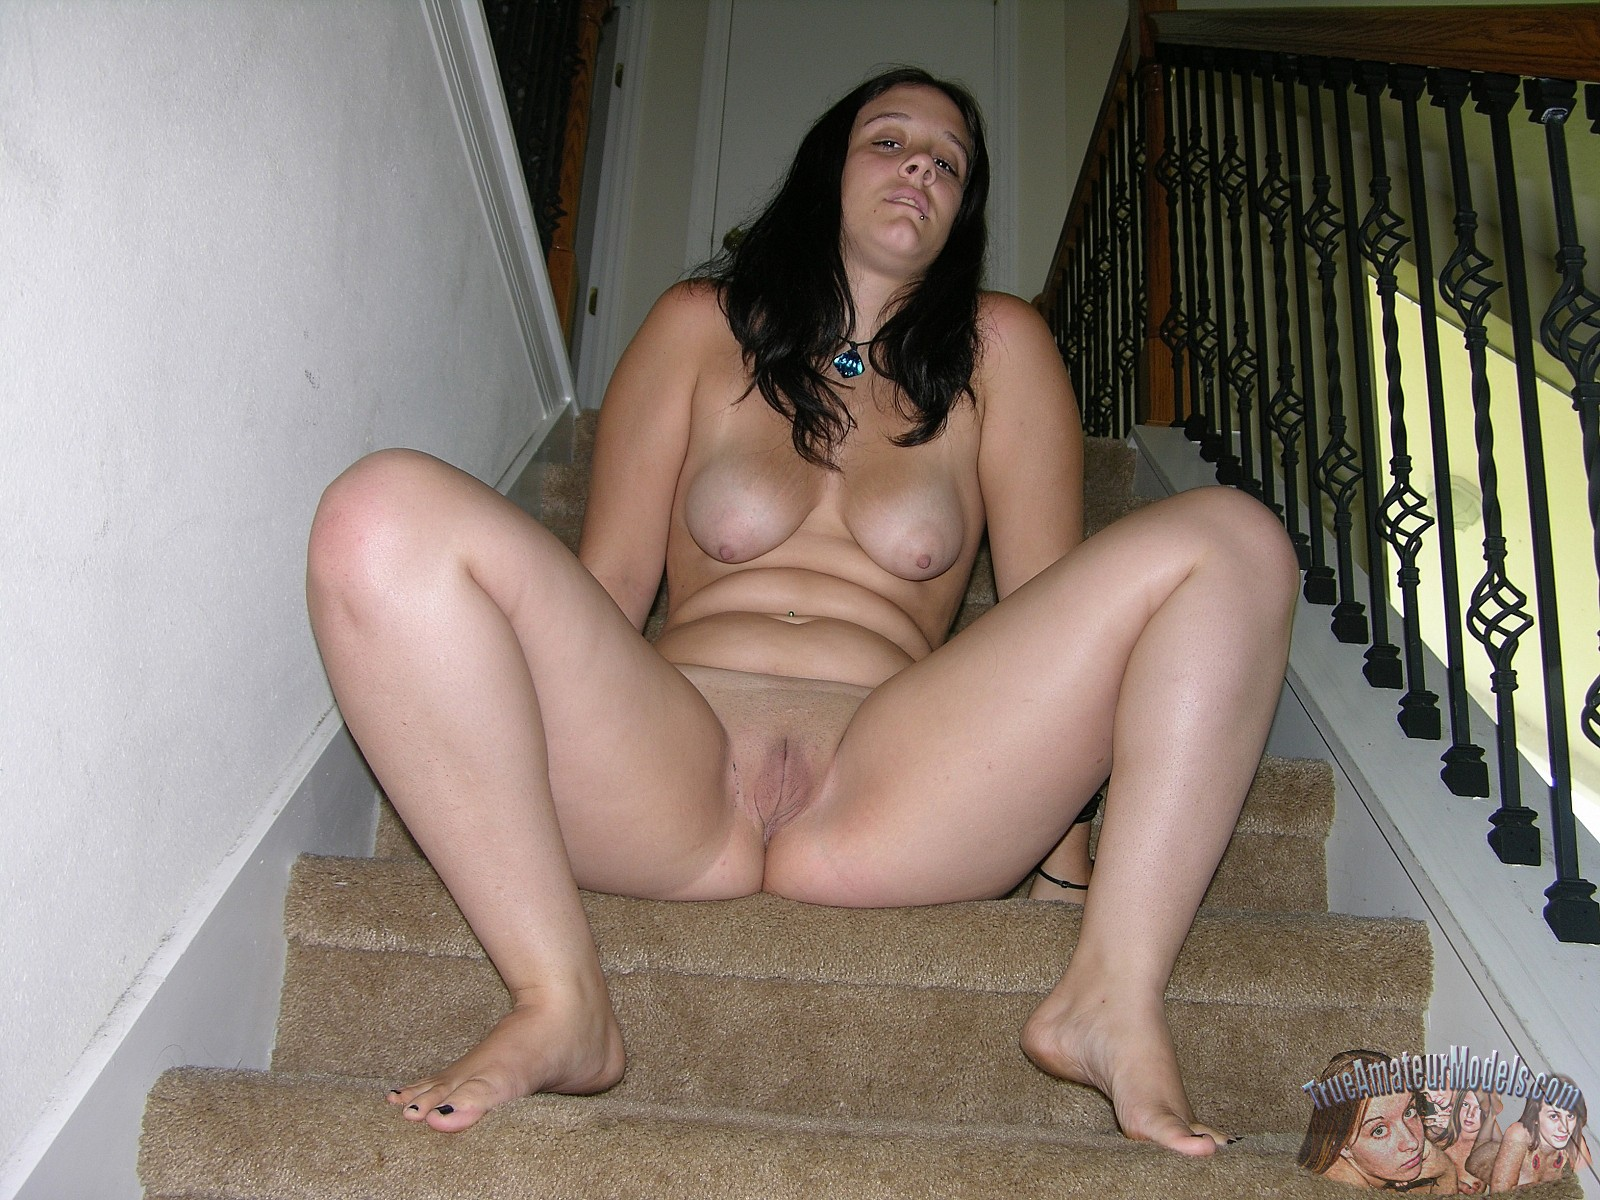 naked stripped woman